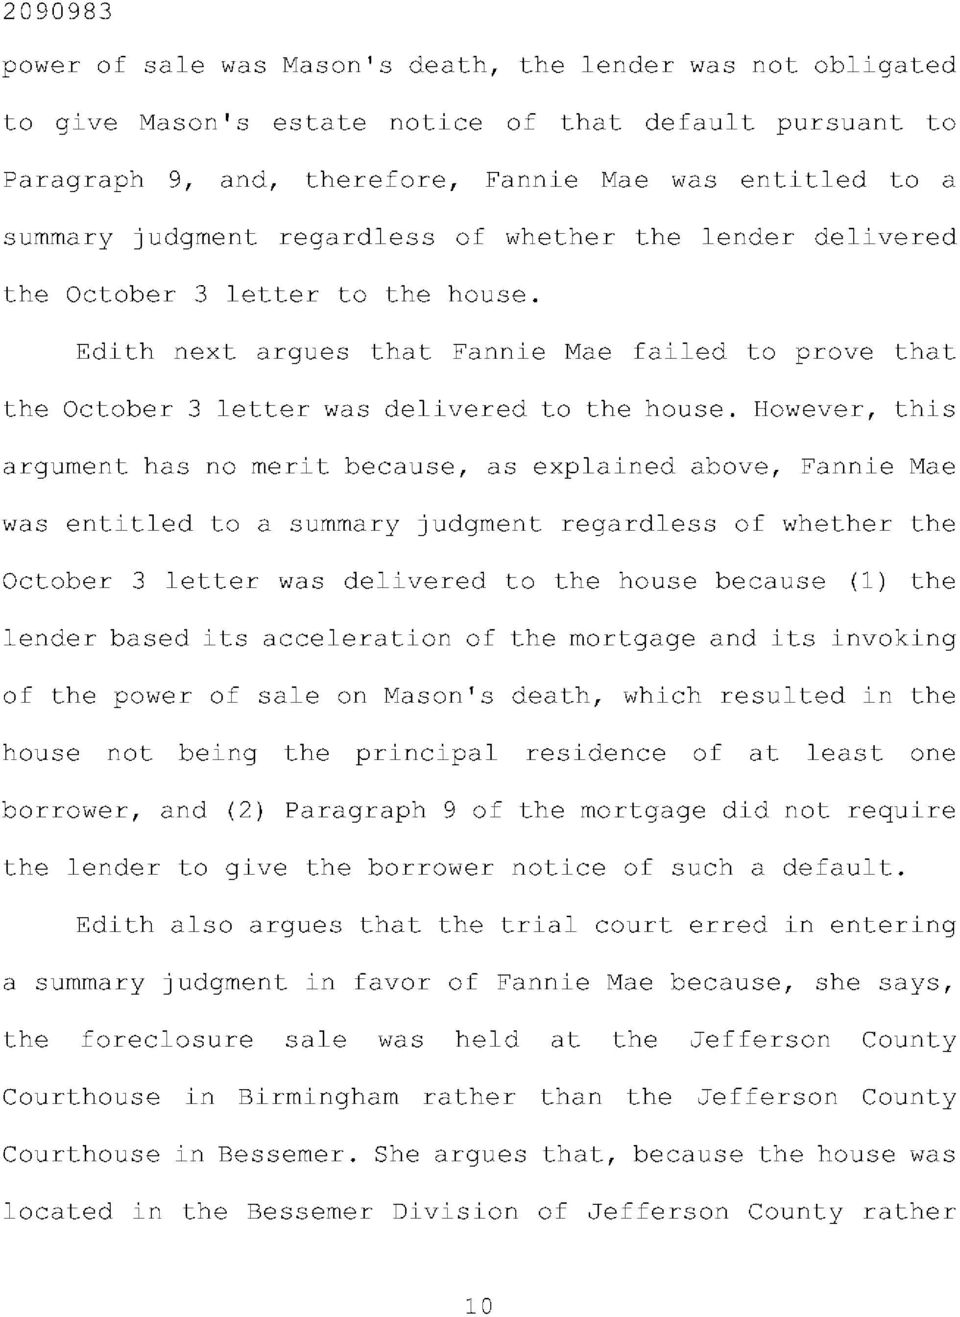 However, this argument has no merit because, as explained above, Fannie Mae was entitled to a summary judgment regardless of whether the October 3 letter was delivered to the house because (1) the